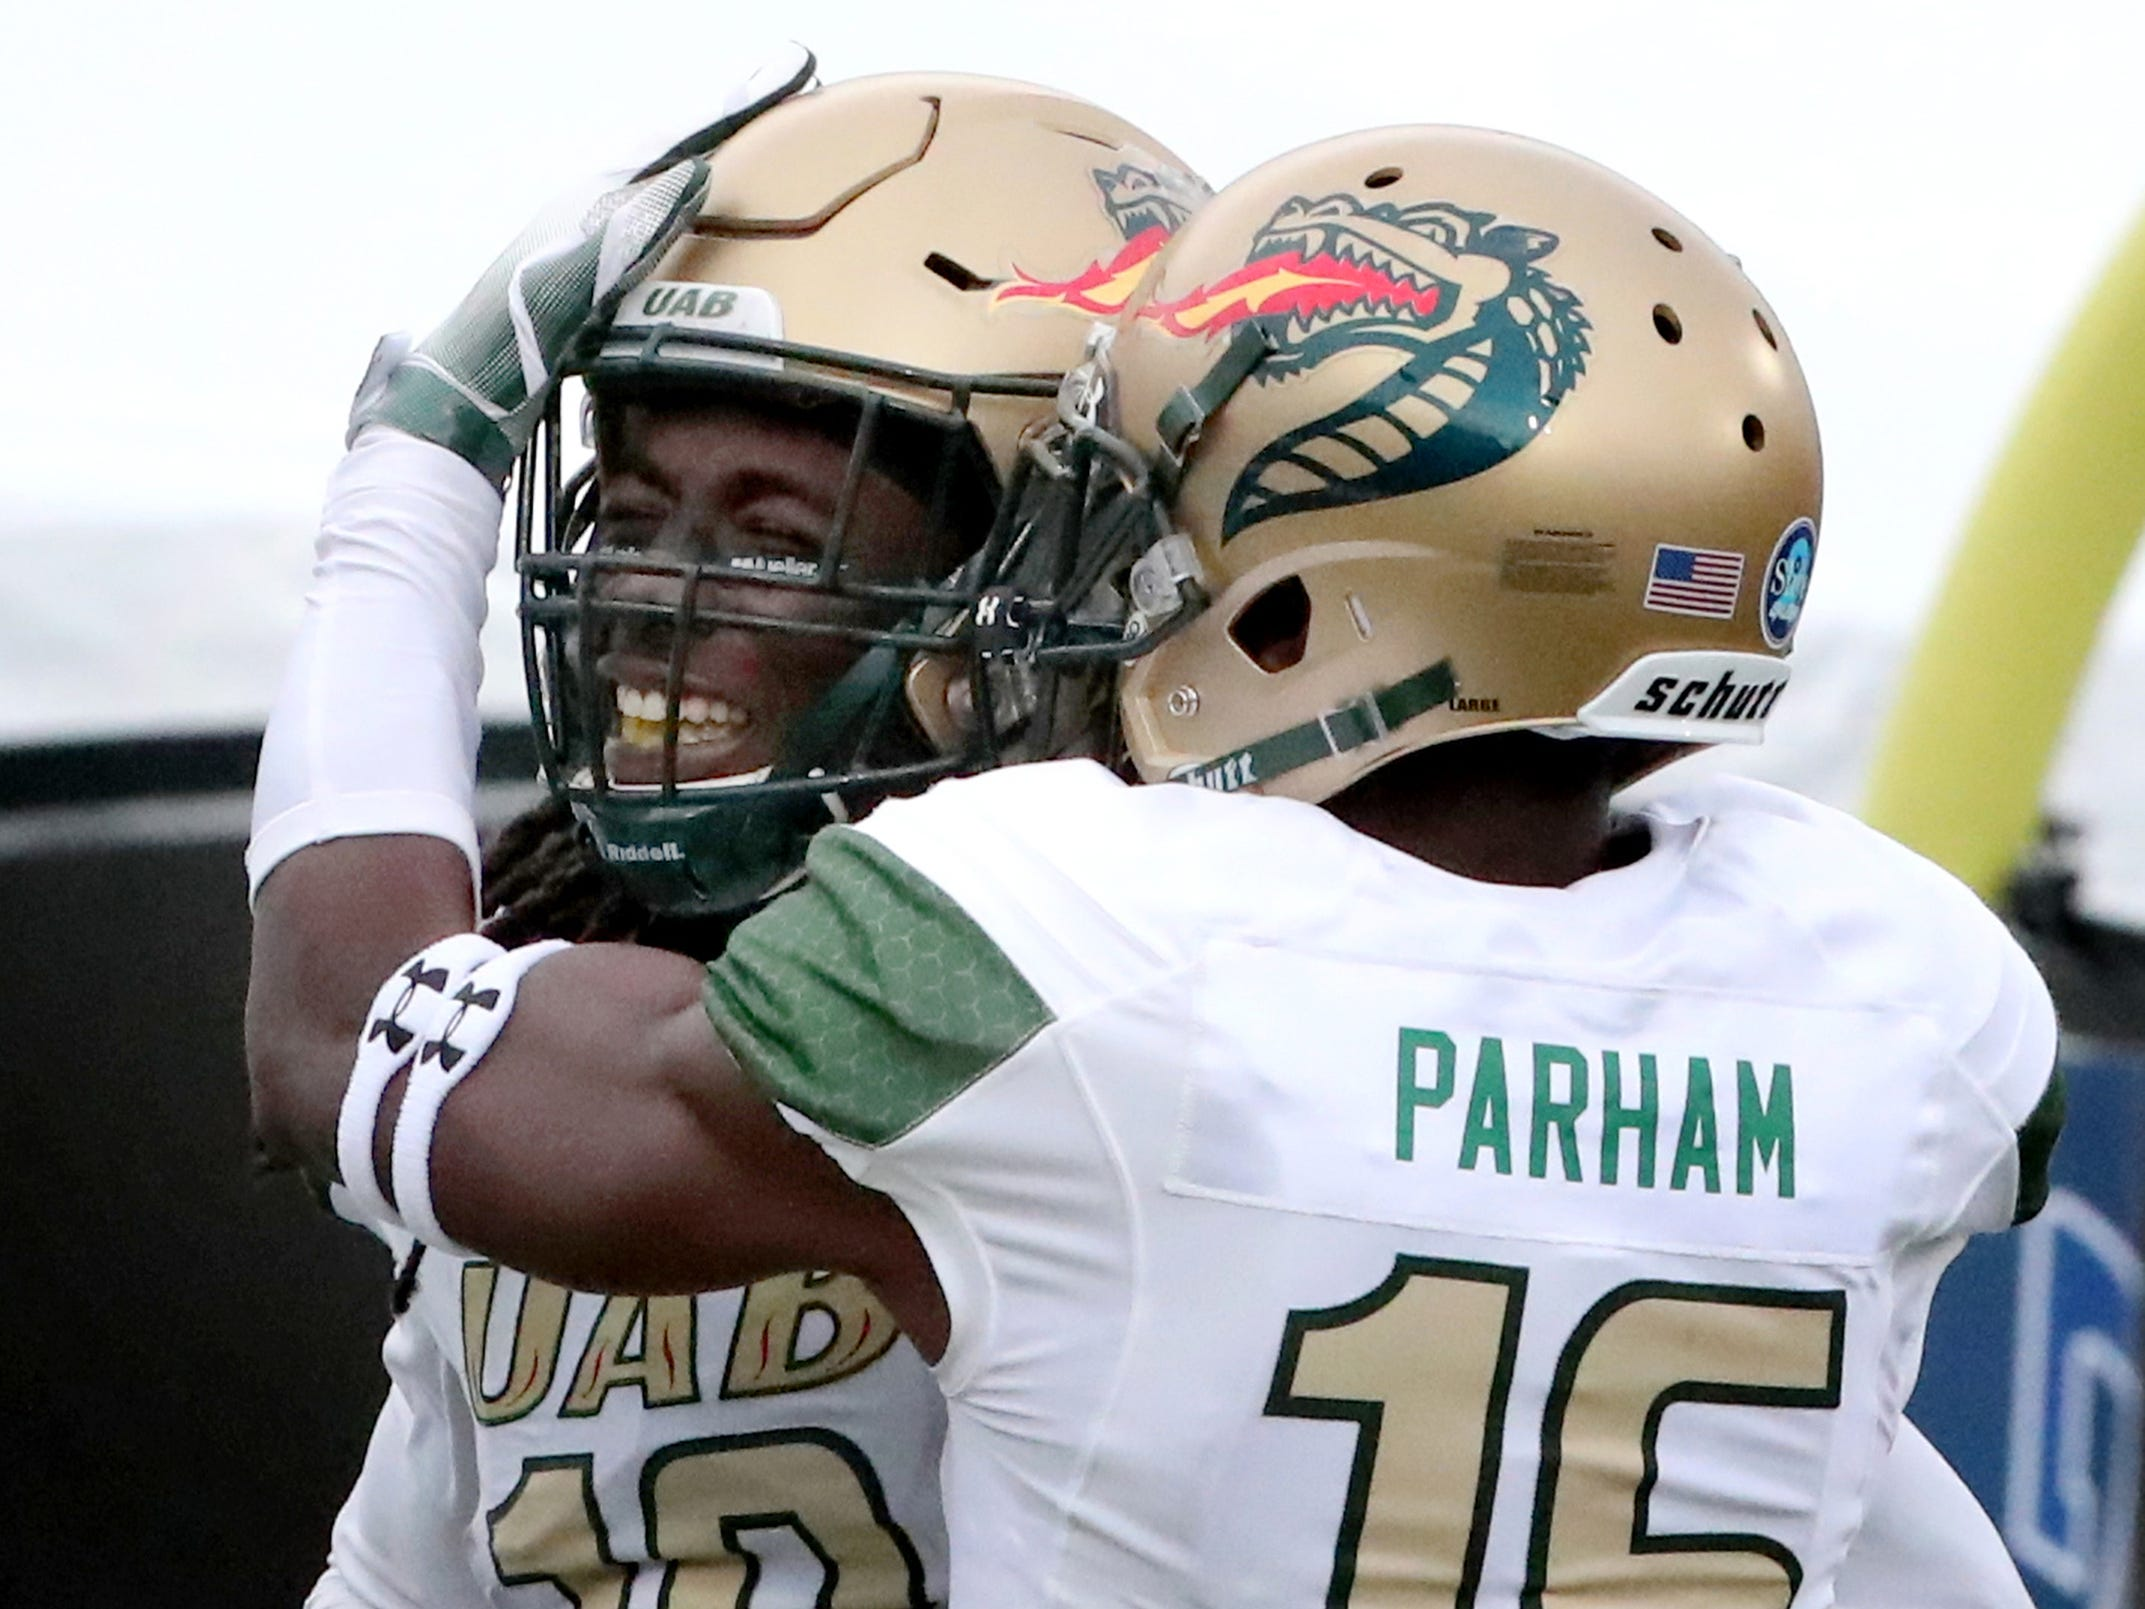 UAB's wide receiver Kendall Parham (16) celebrates UAB's wide receiver Kailon Carter 's (18) catch against MTSU during the Conference USA Championship at MTSU on Saturday, Dec. 1, 2018.